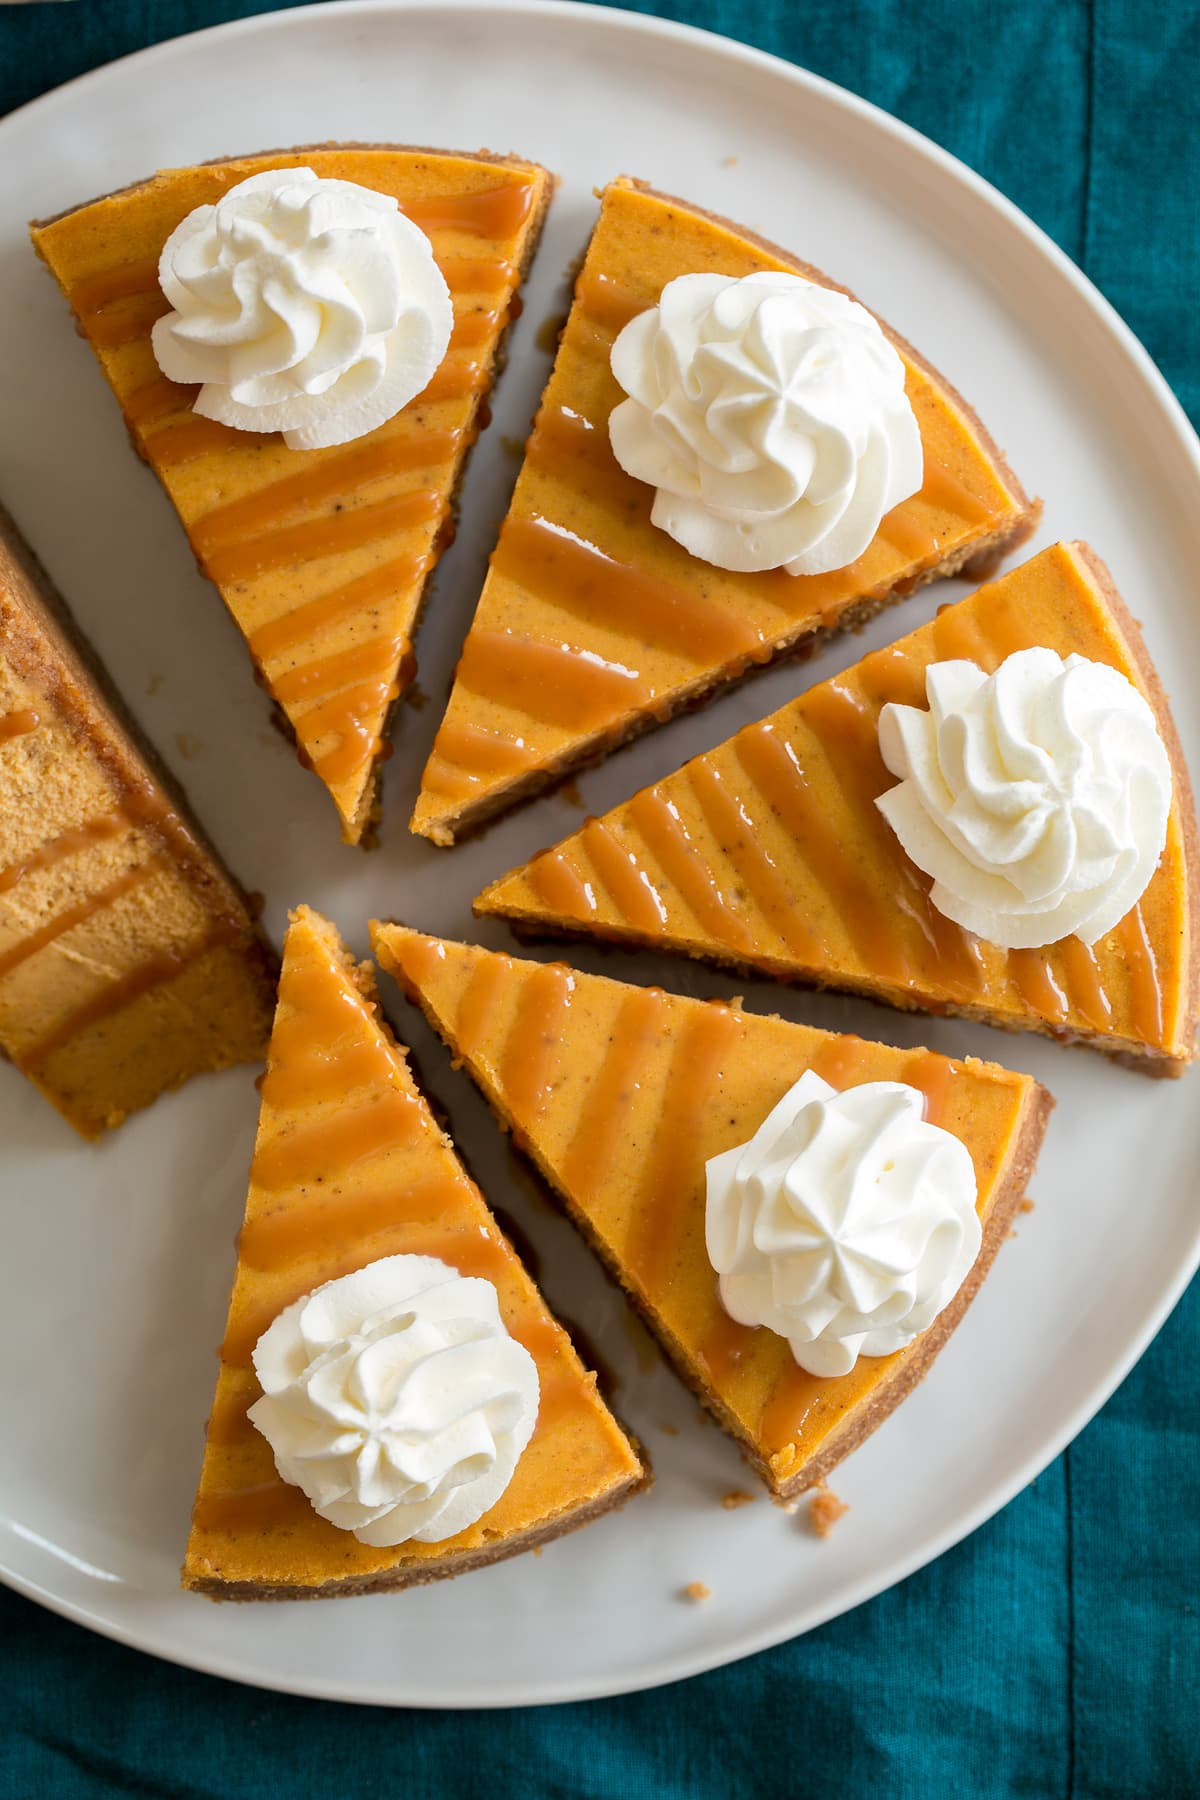 Overhead image of six slices of pumpkin cheesecake on a white serving platter.